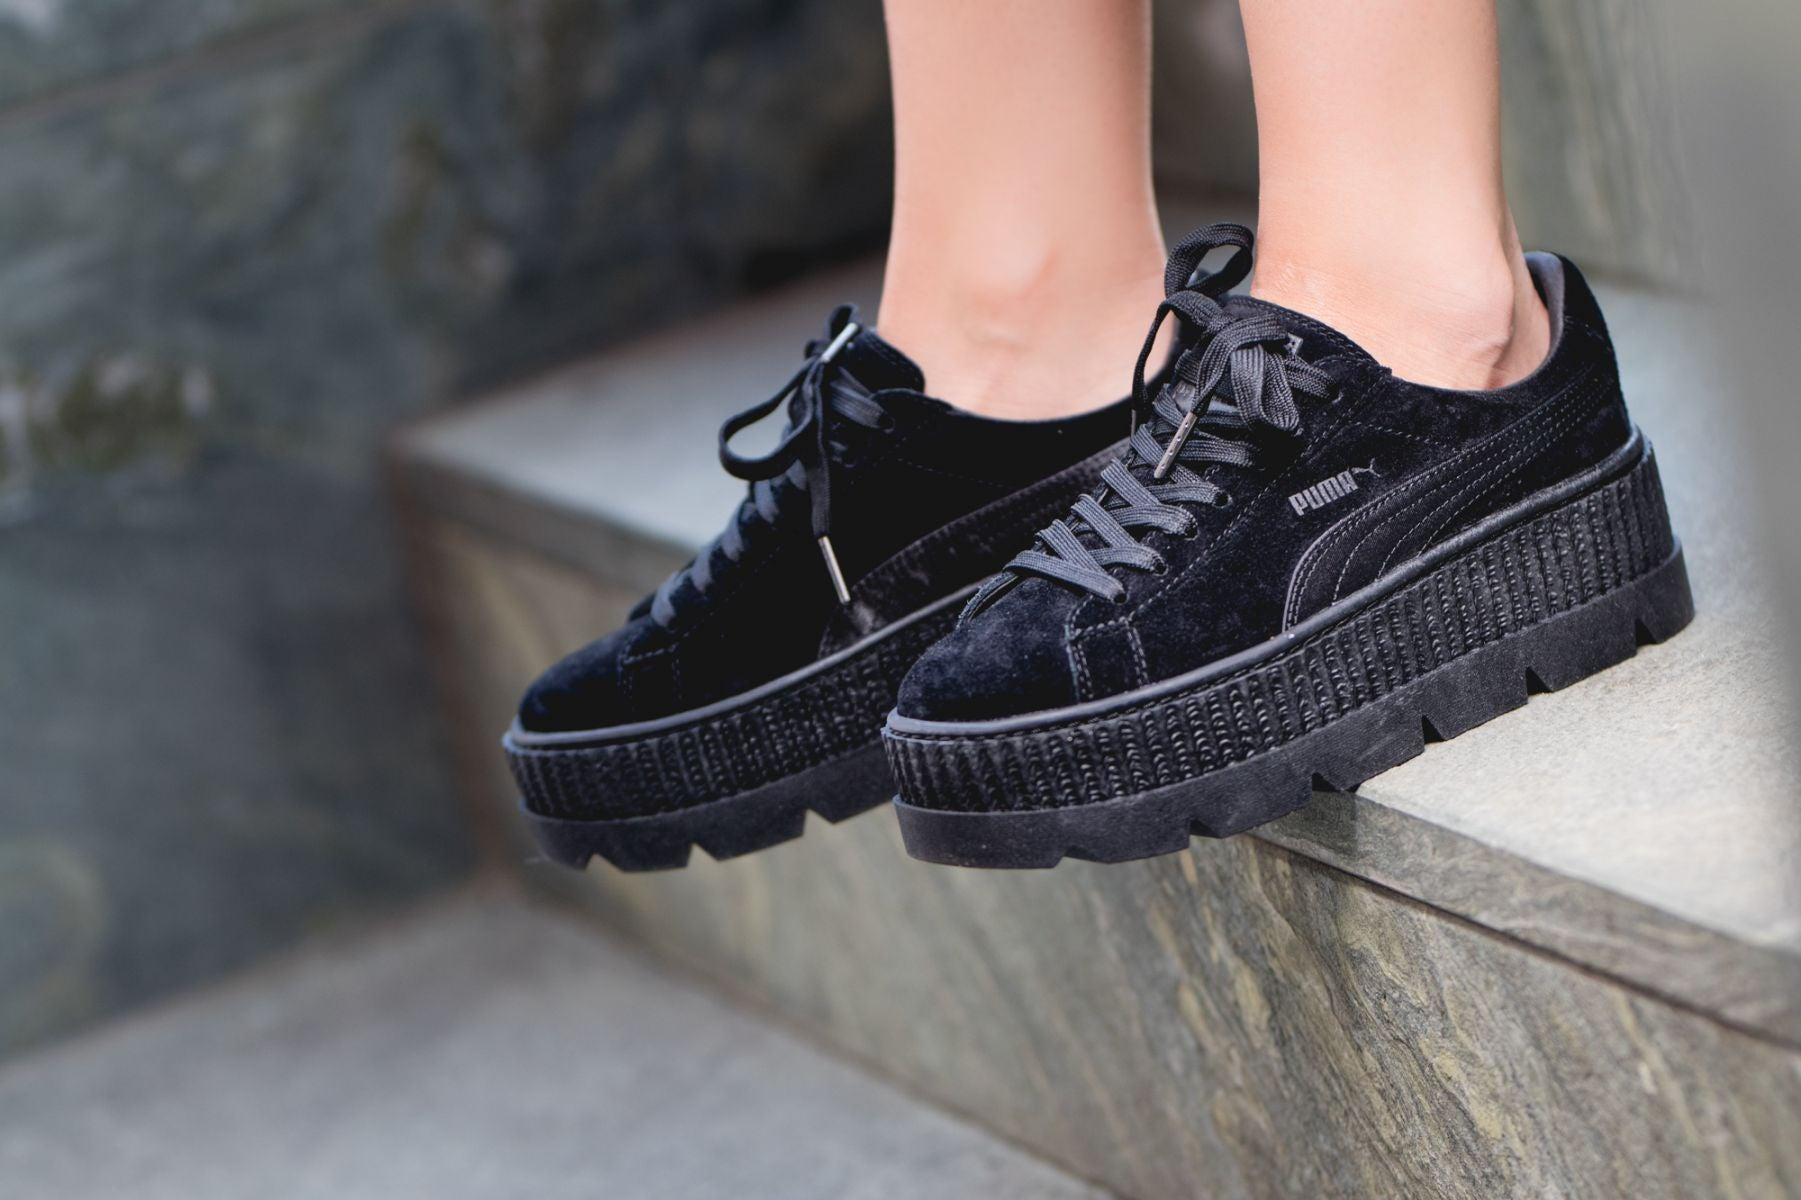 Rihanna x Puma Fenty Cleated Creeper  Puma Black  57cc527a0